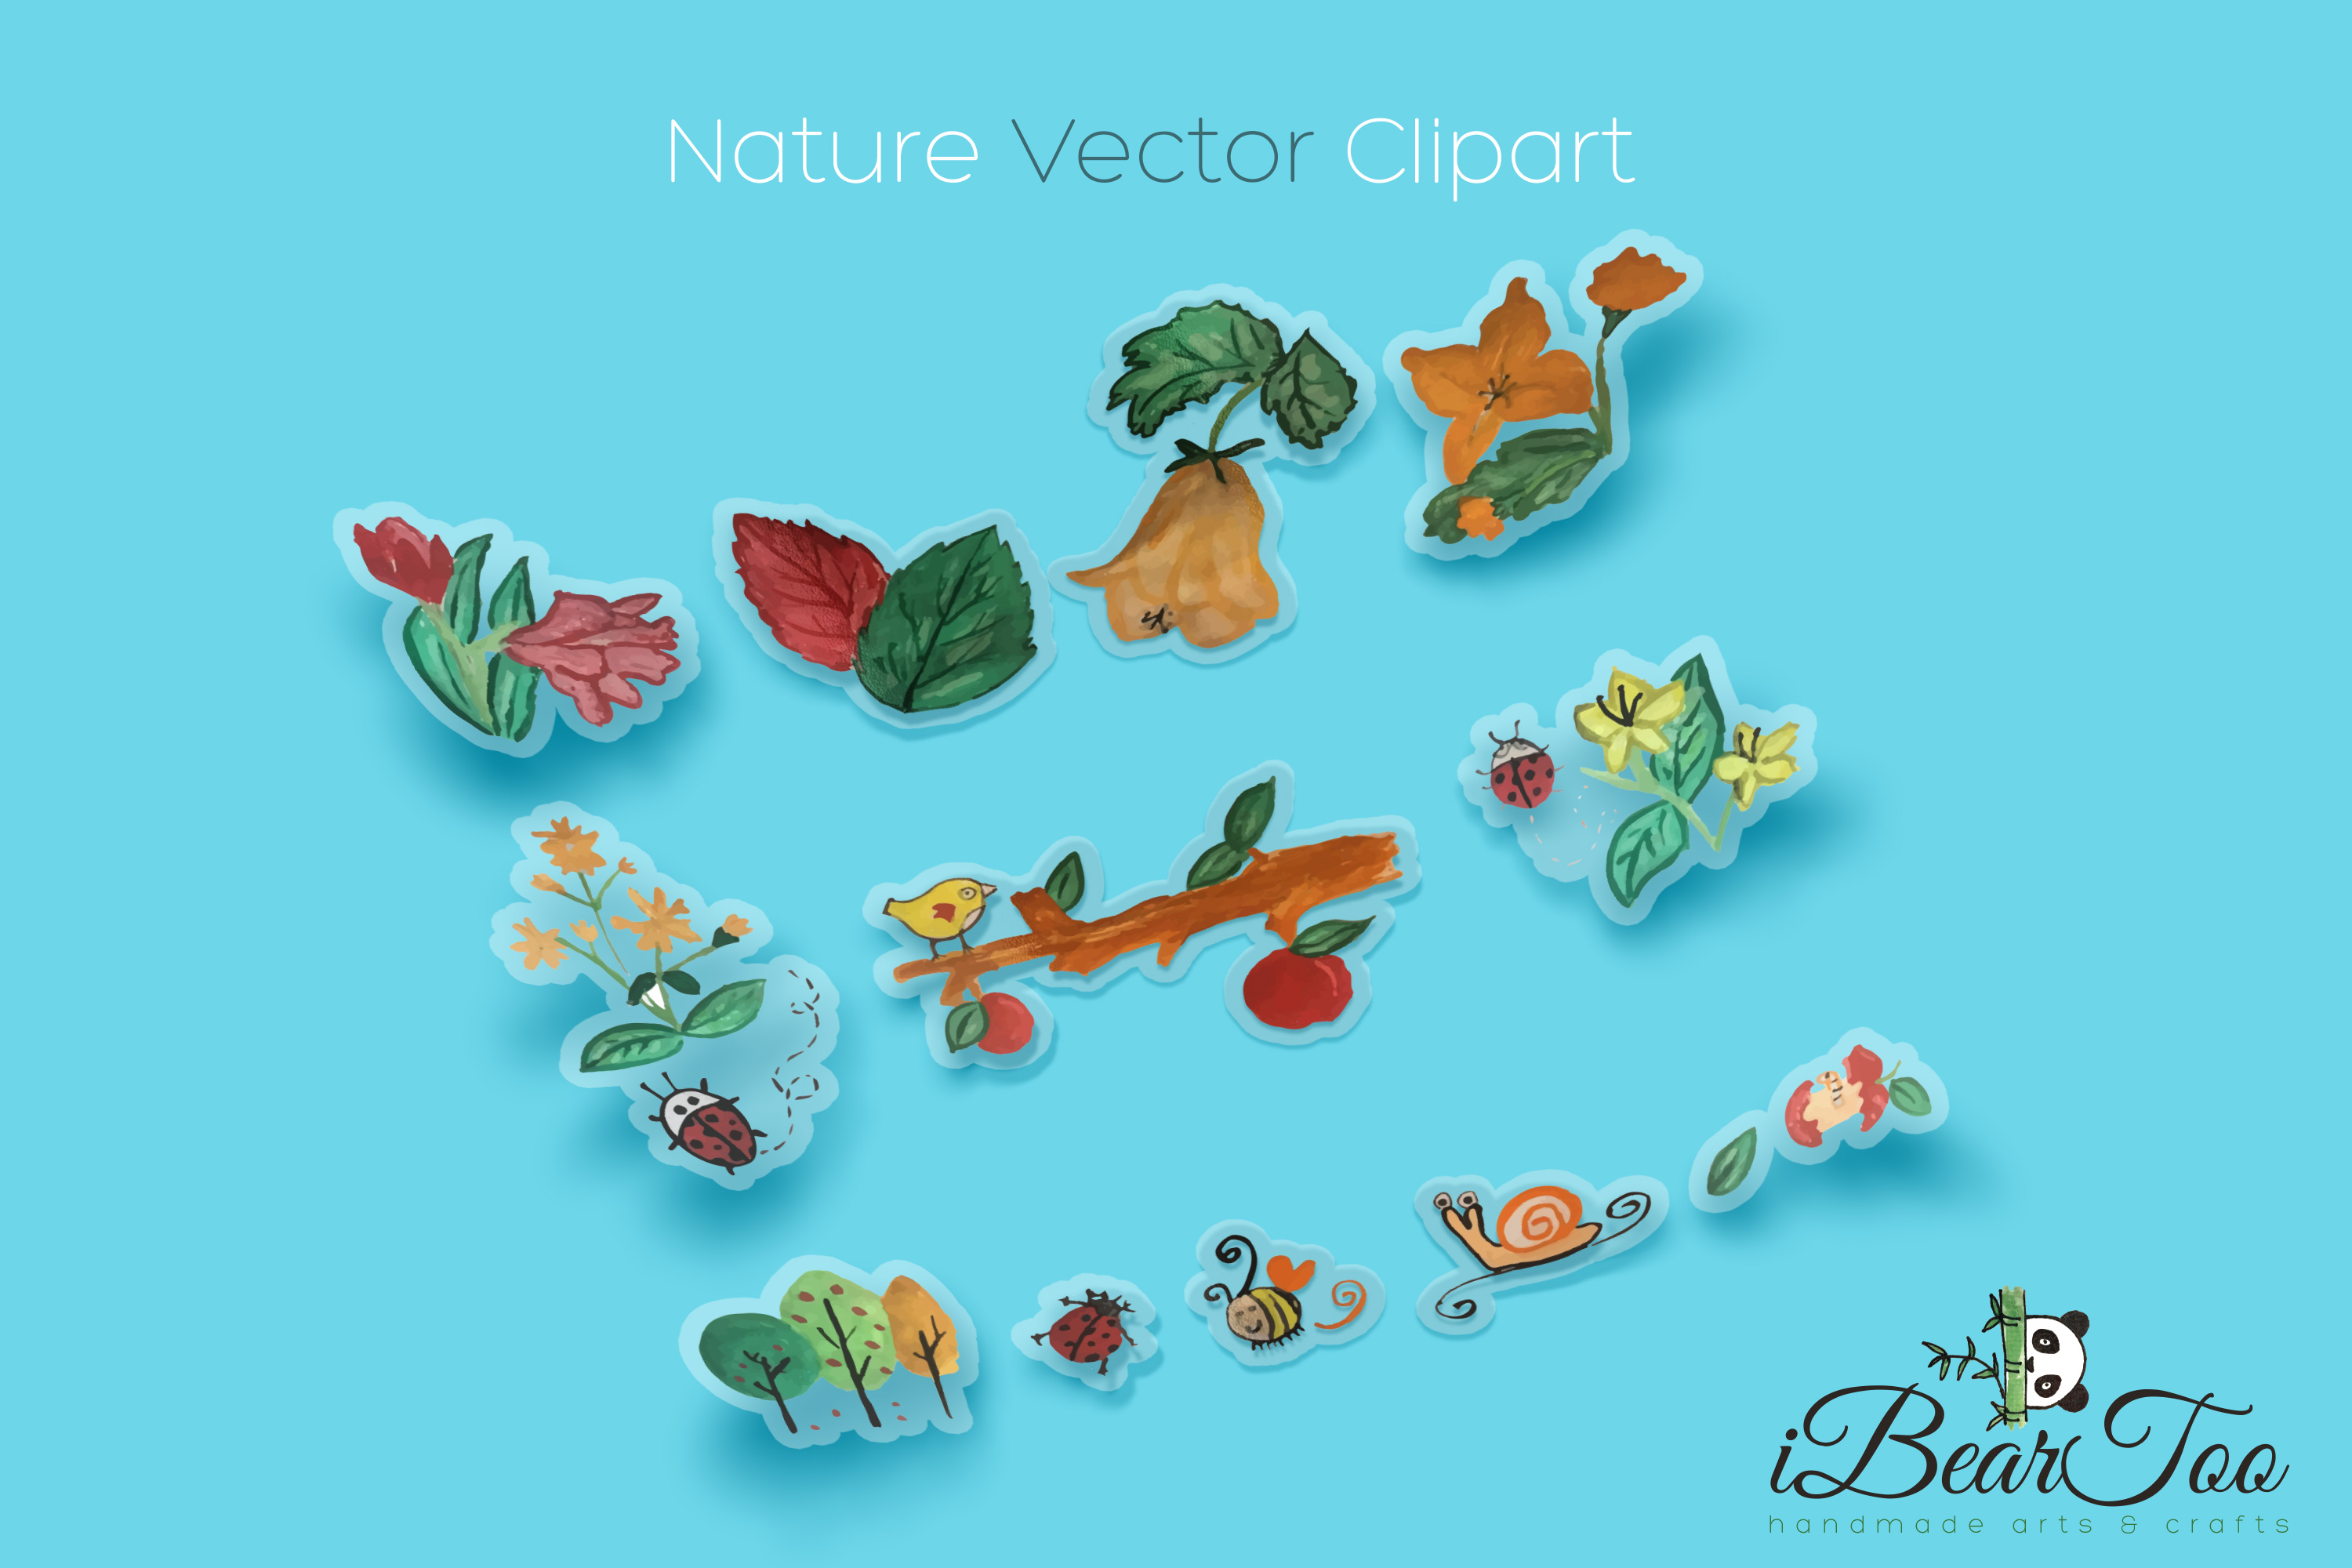 Nature Vector Watercolor Clipart Graphic By Ibeartoo Creative